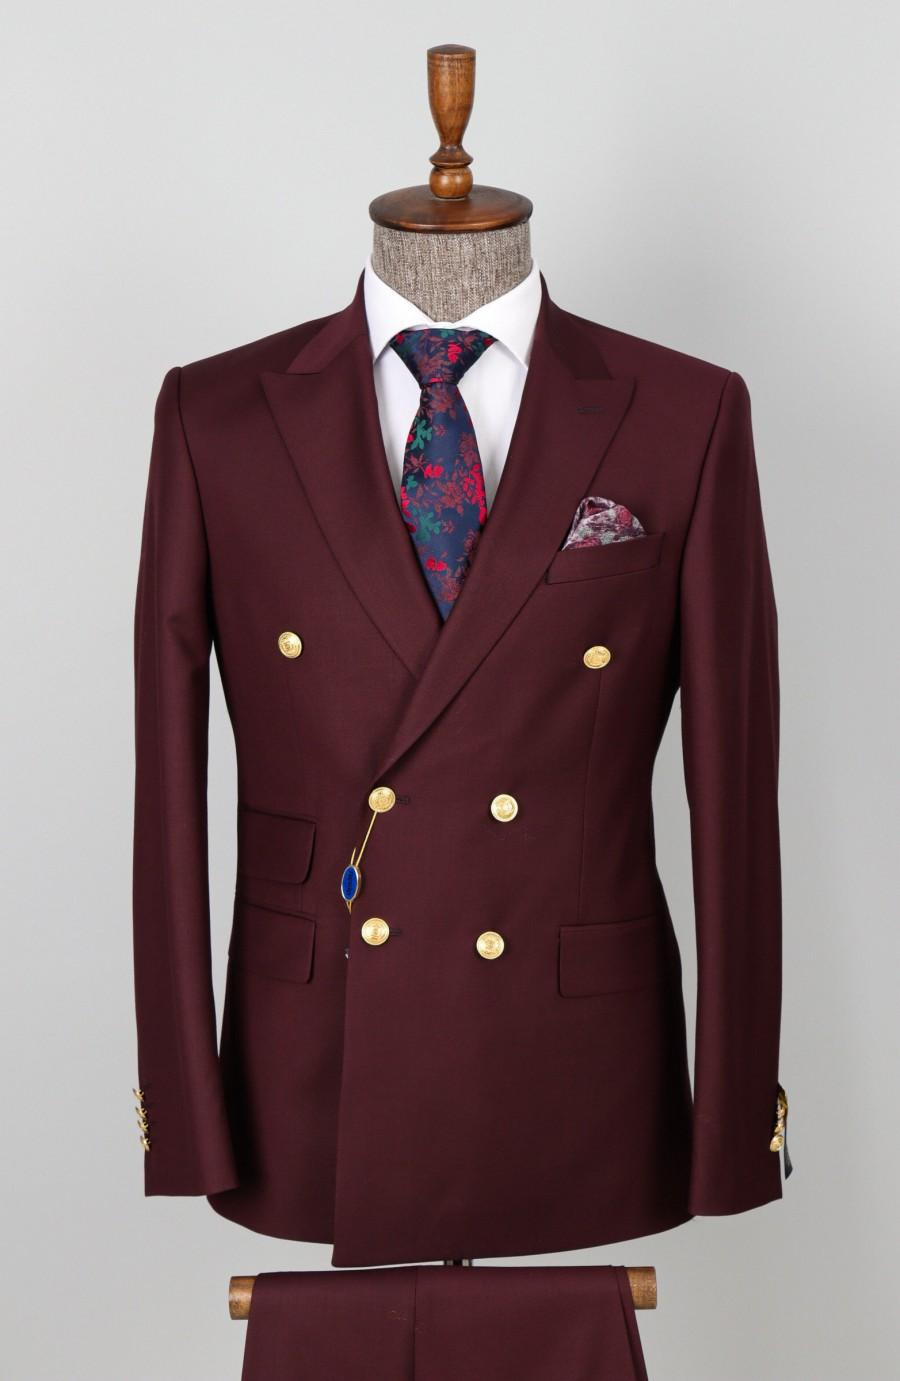 Hochzeit - Double Breasted Maroon - 6 Button Button Men Suit